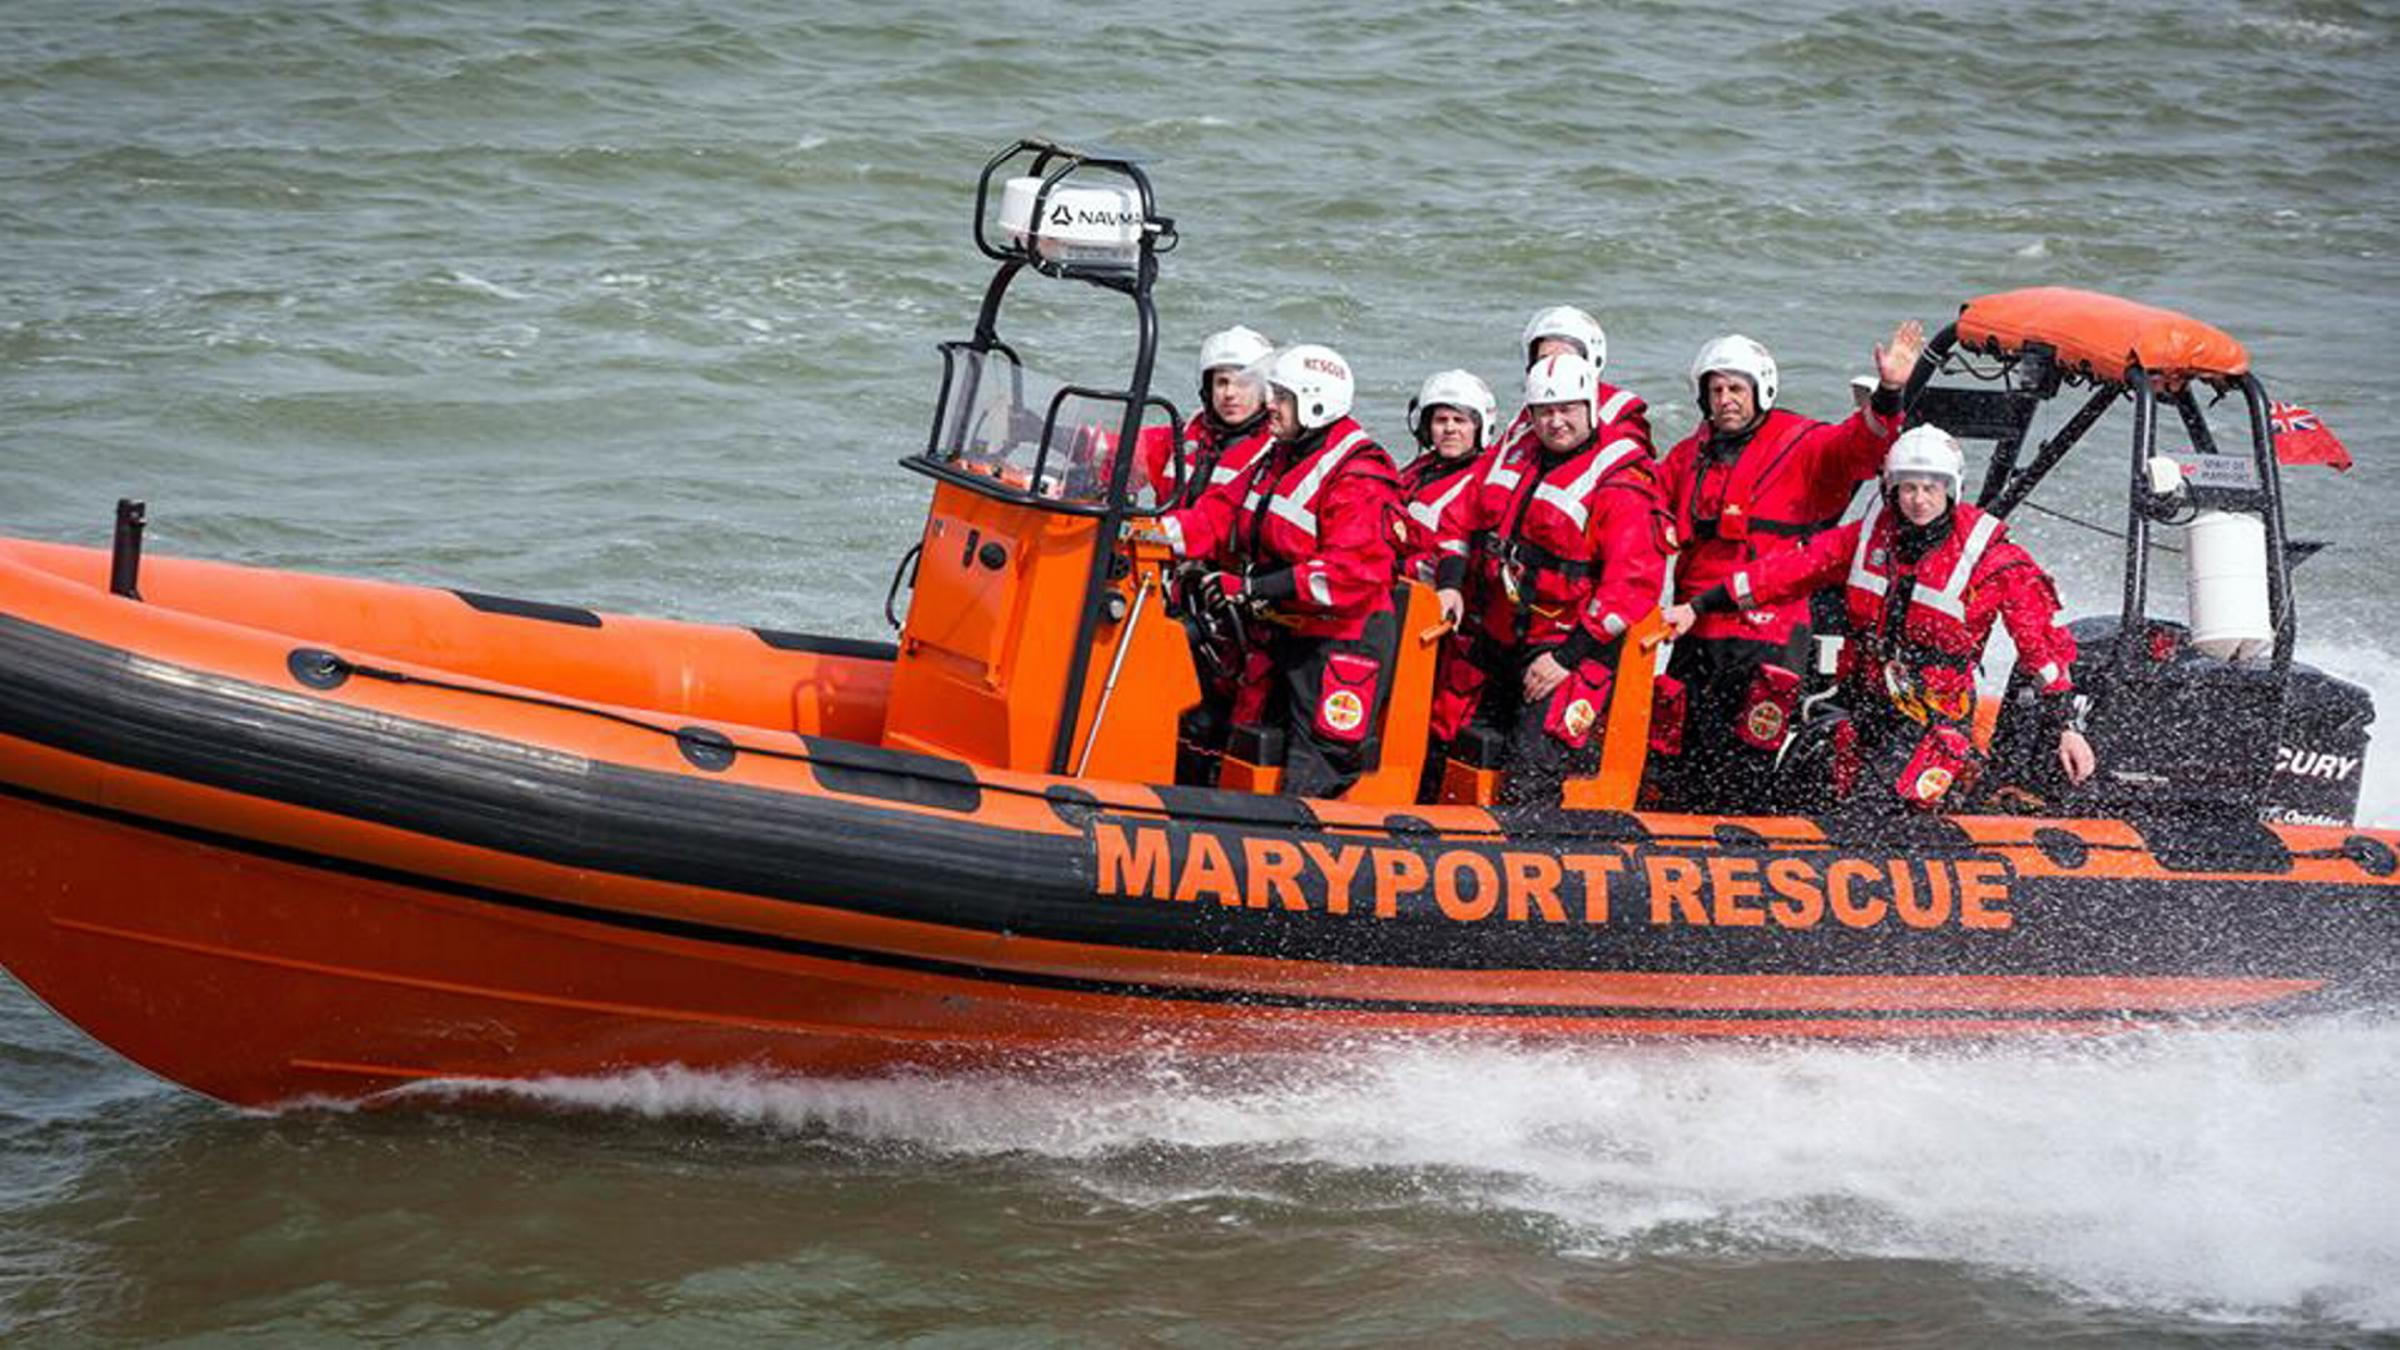 Maryport Inshore Rescue crew  S65860.jpg.